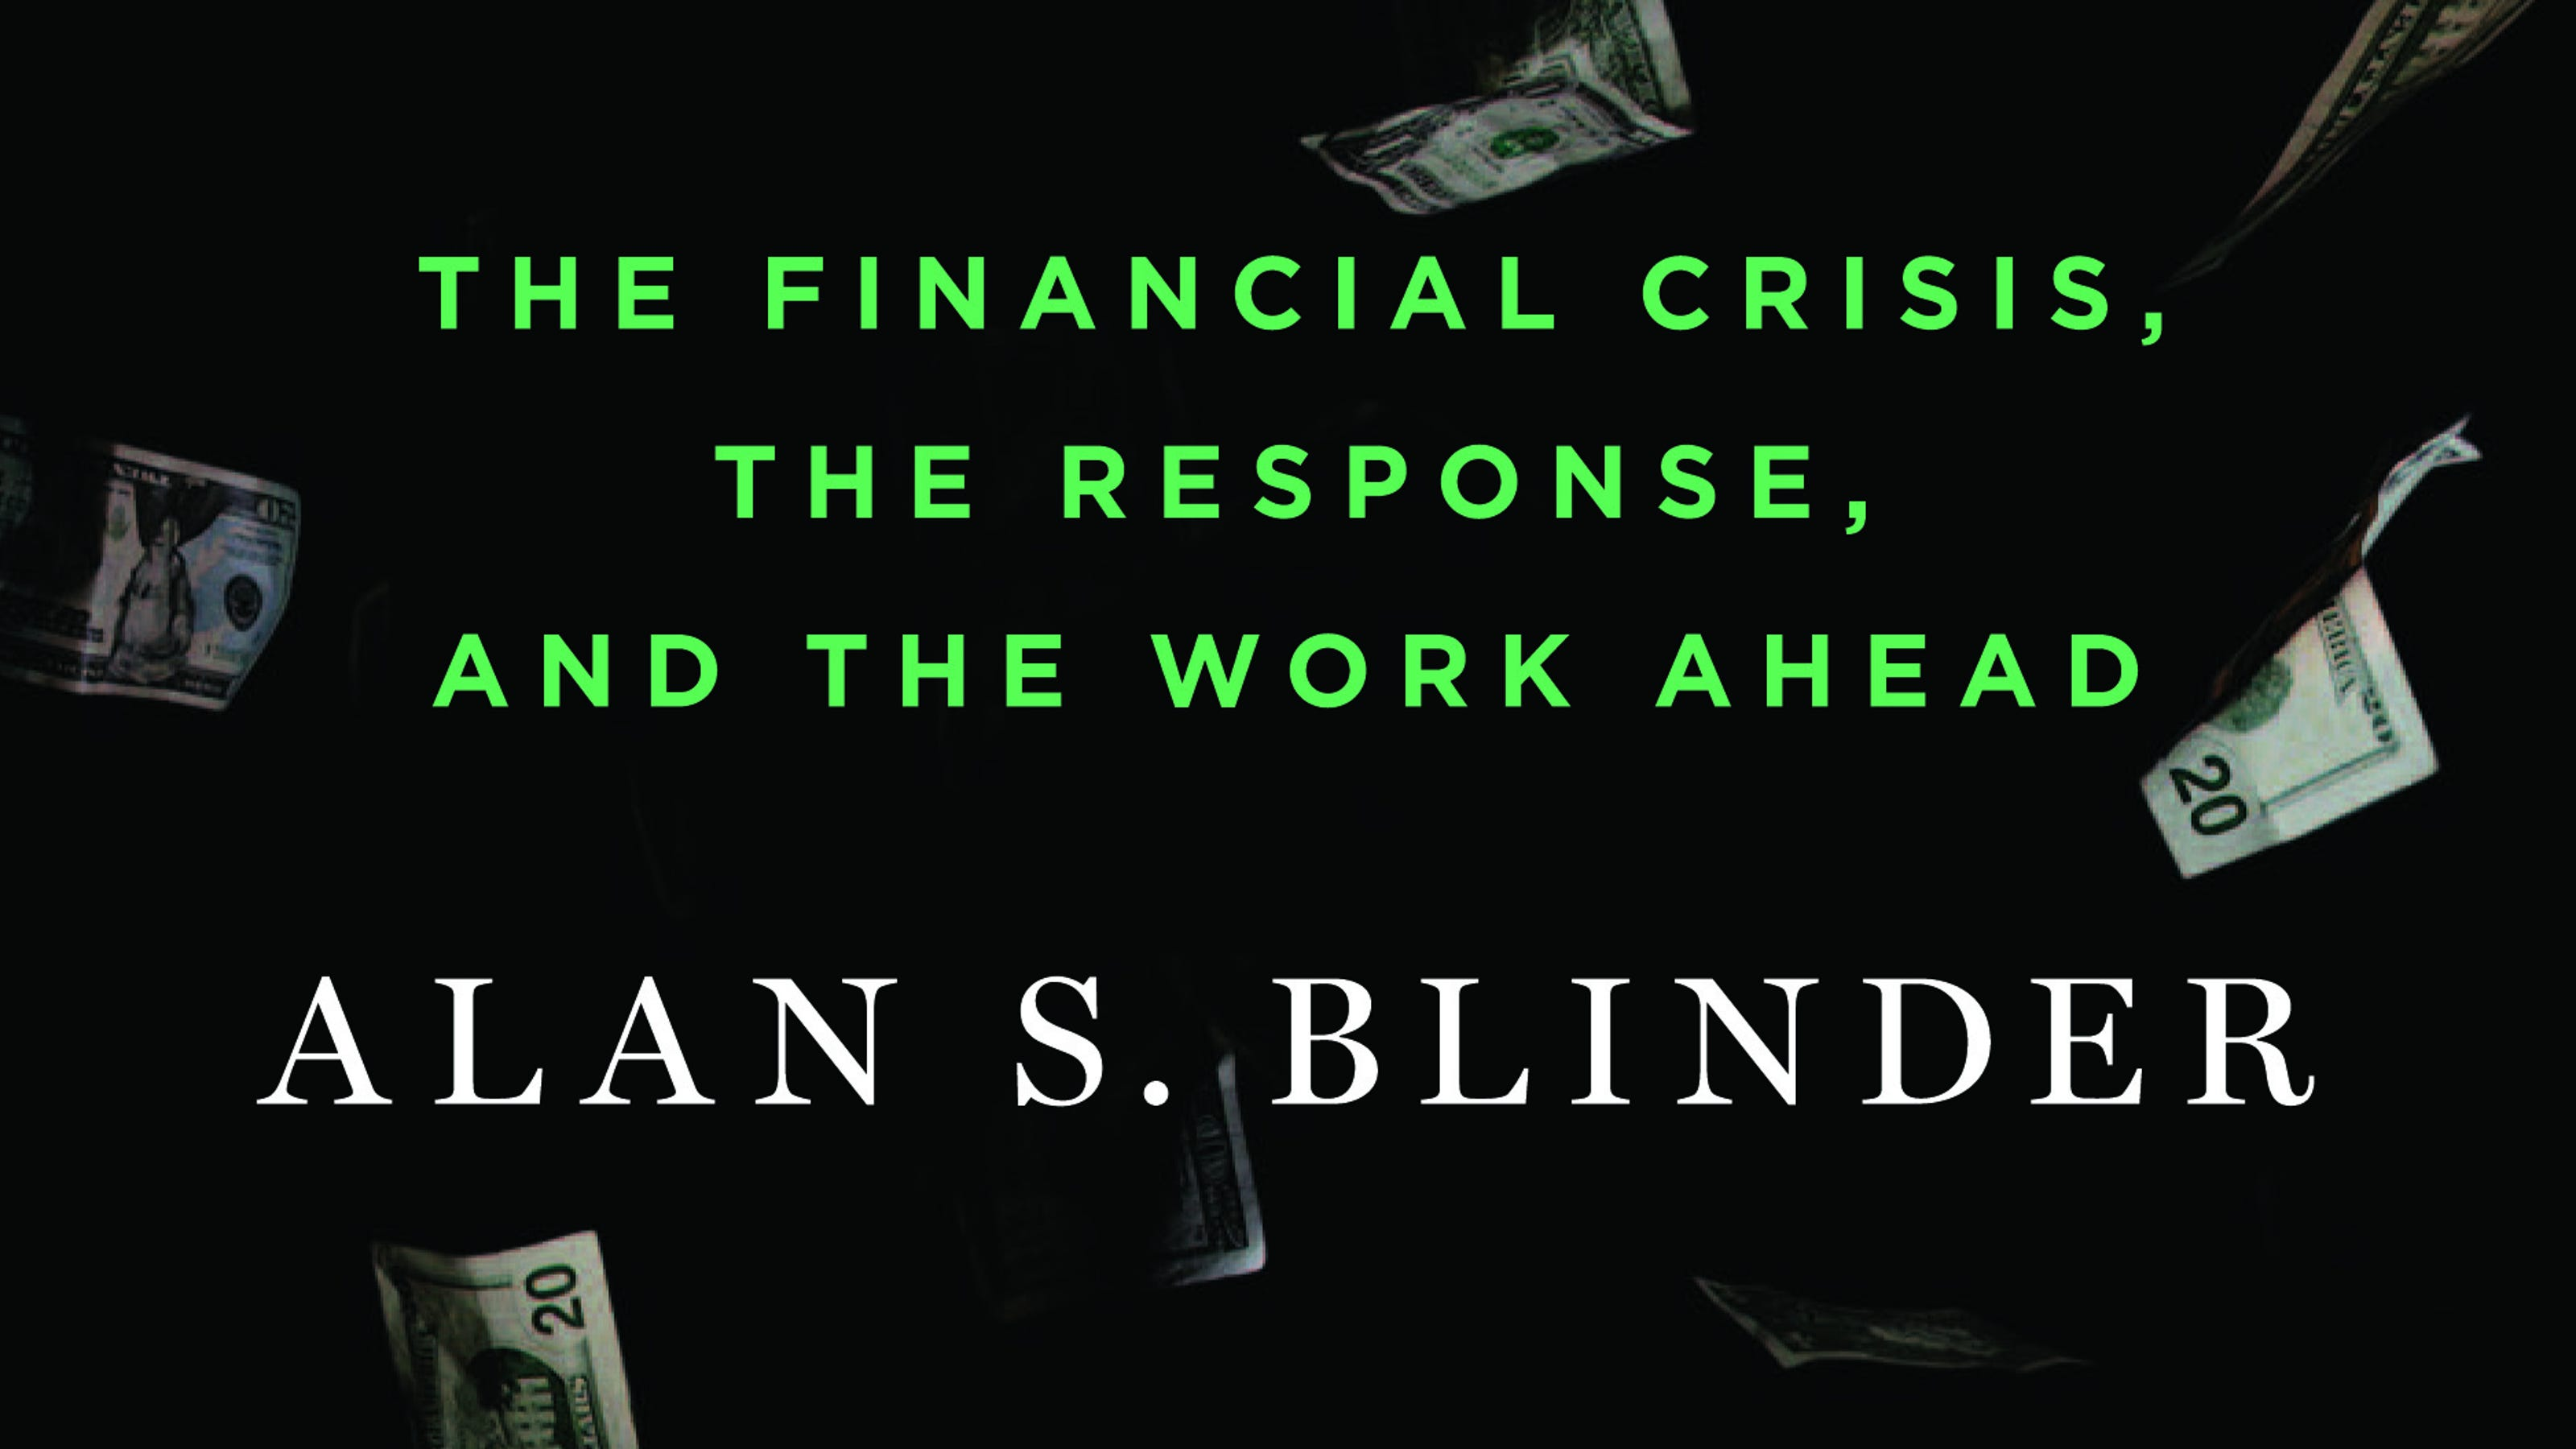 a review of the reading after the music stopped by alan blinder John lanchester, london review of books  alan s blinder, author of after the  music stopped: the financial crisis, the response, and the work ahead   fascinating anecdotes, the language is conversational, and the book is easy to  read.